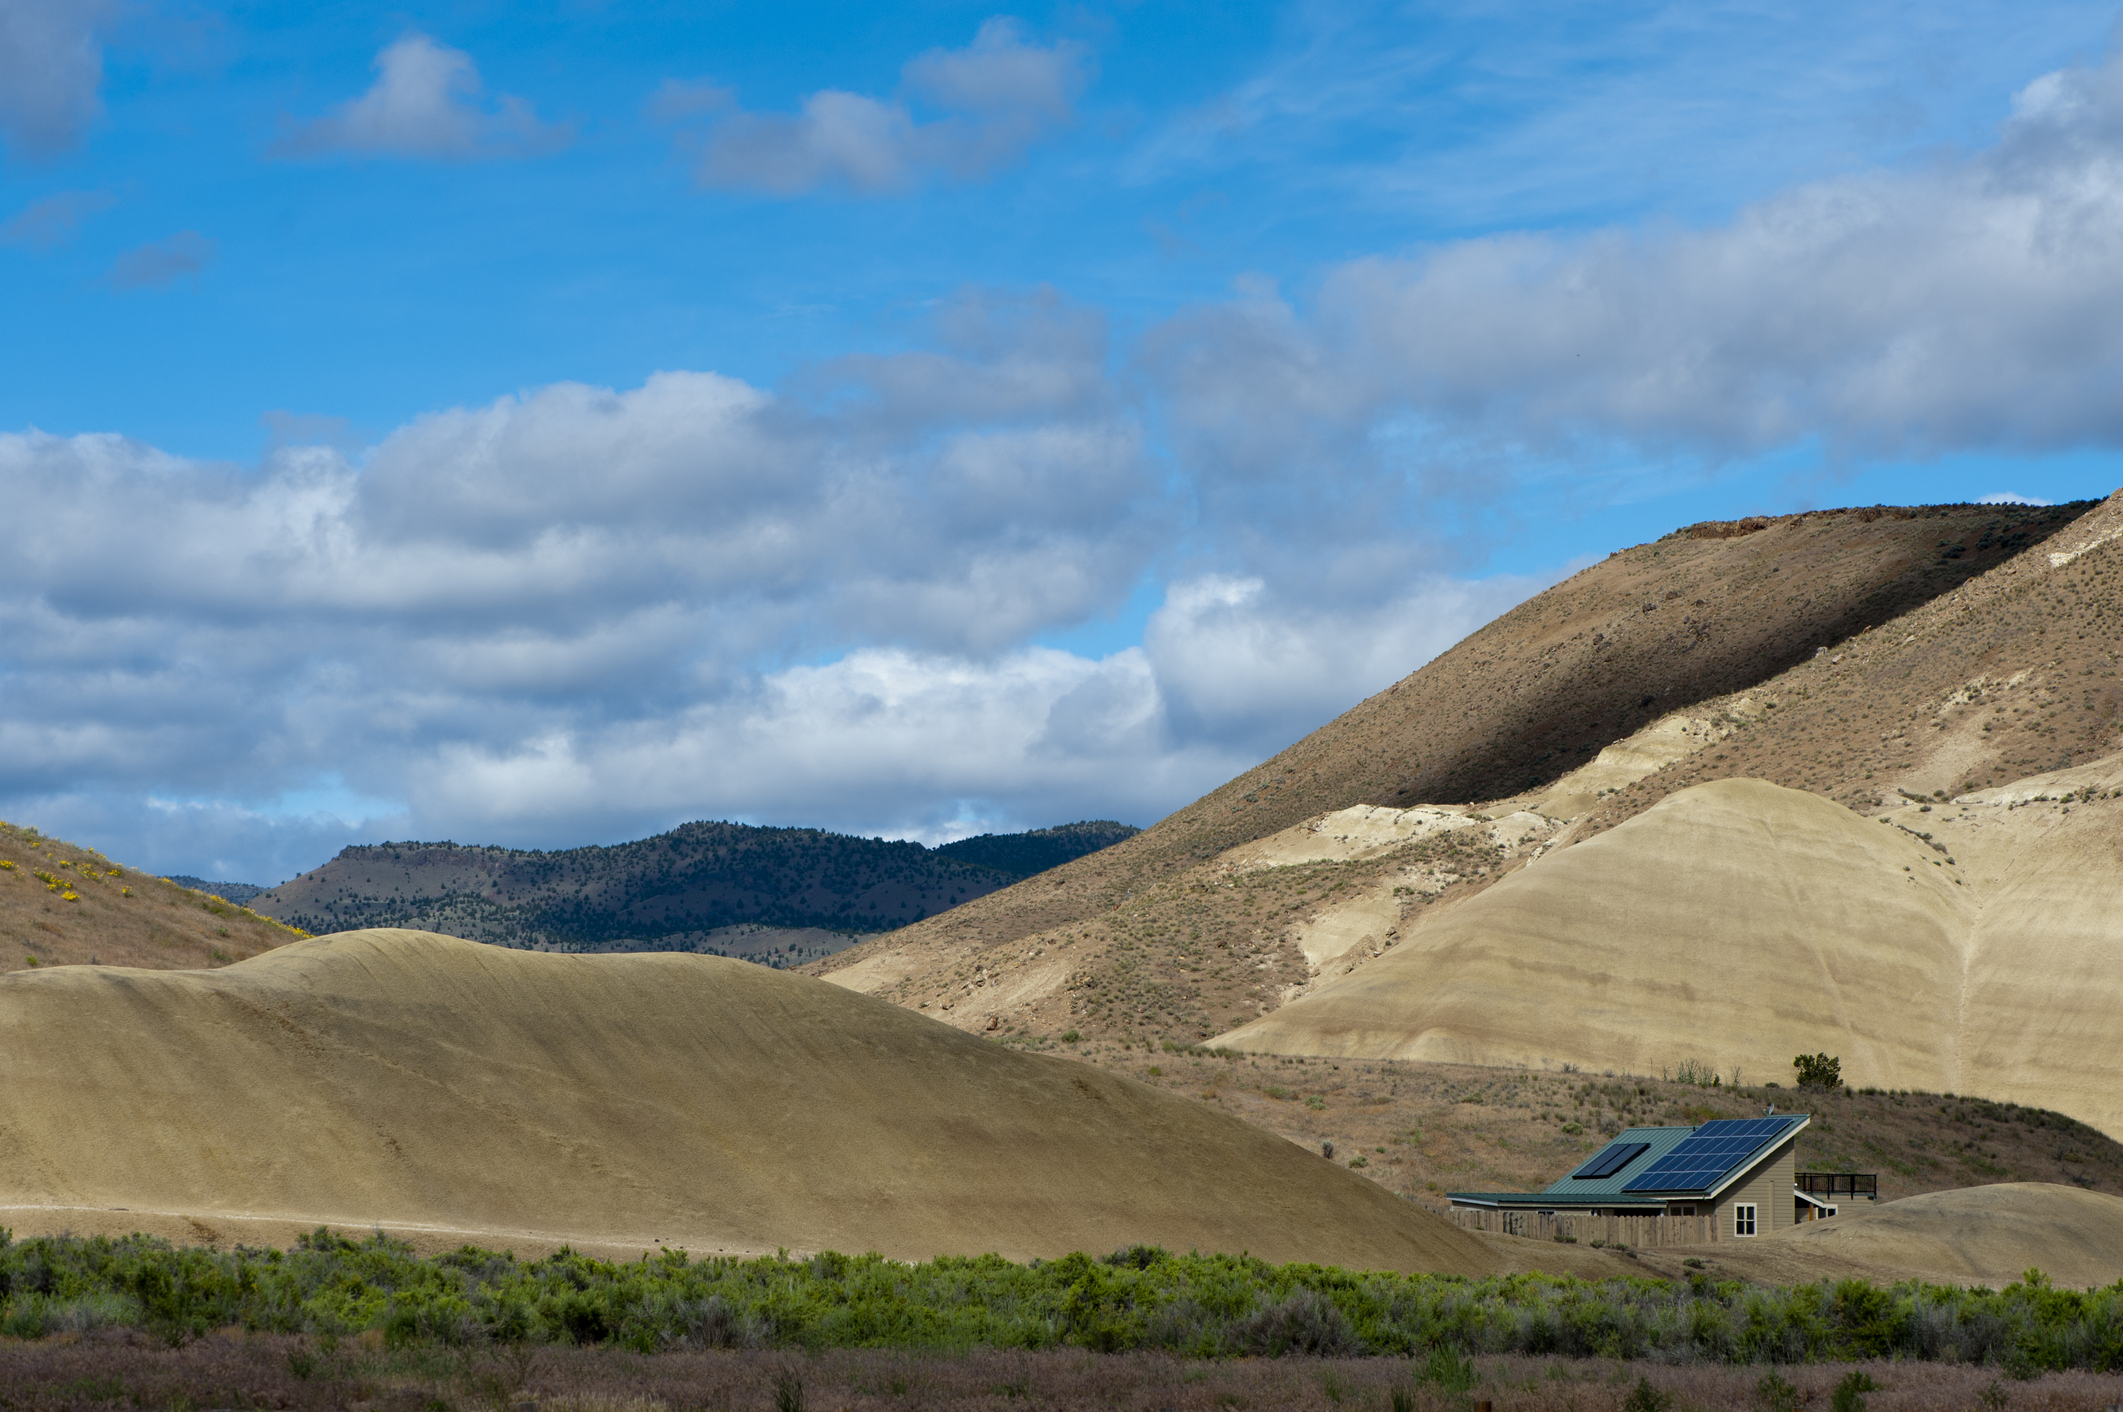 Solar home in Oregon's painted hills